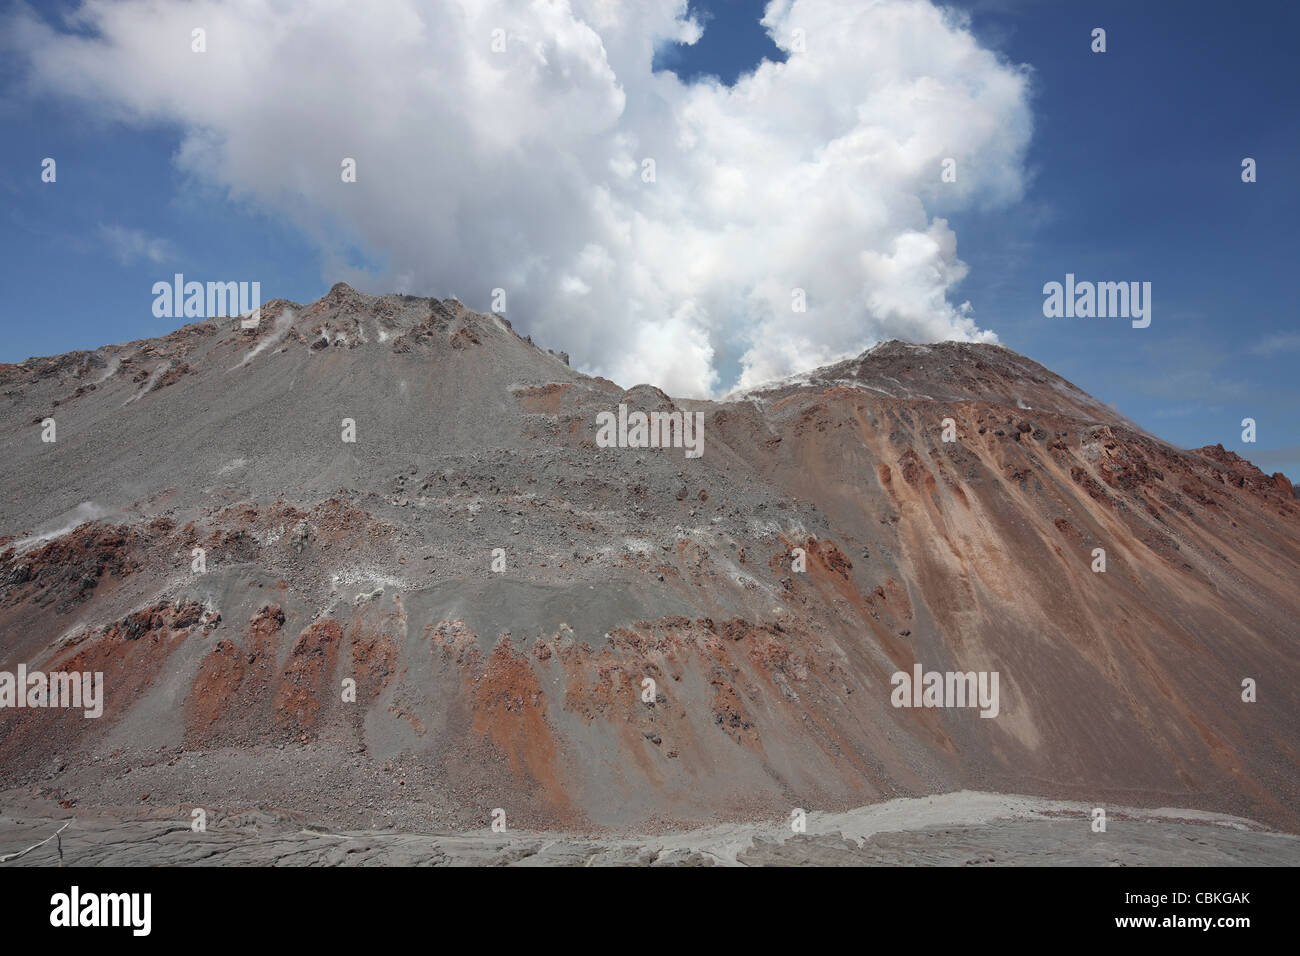 December 6, 2009 - Degassing Lava Dome sitting in summit crater of Chaiten volcano, Chile. - Stock Image